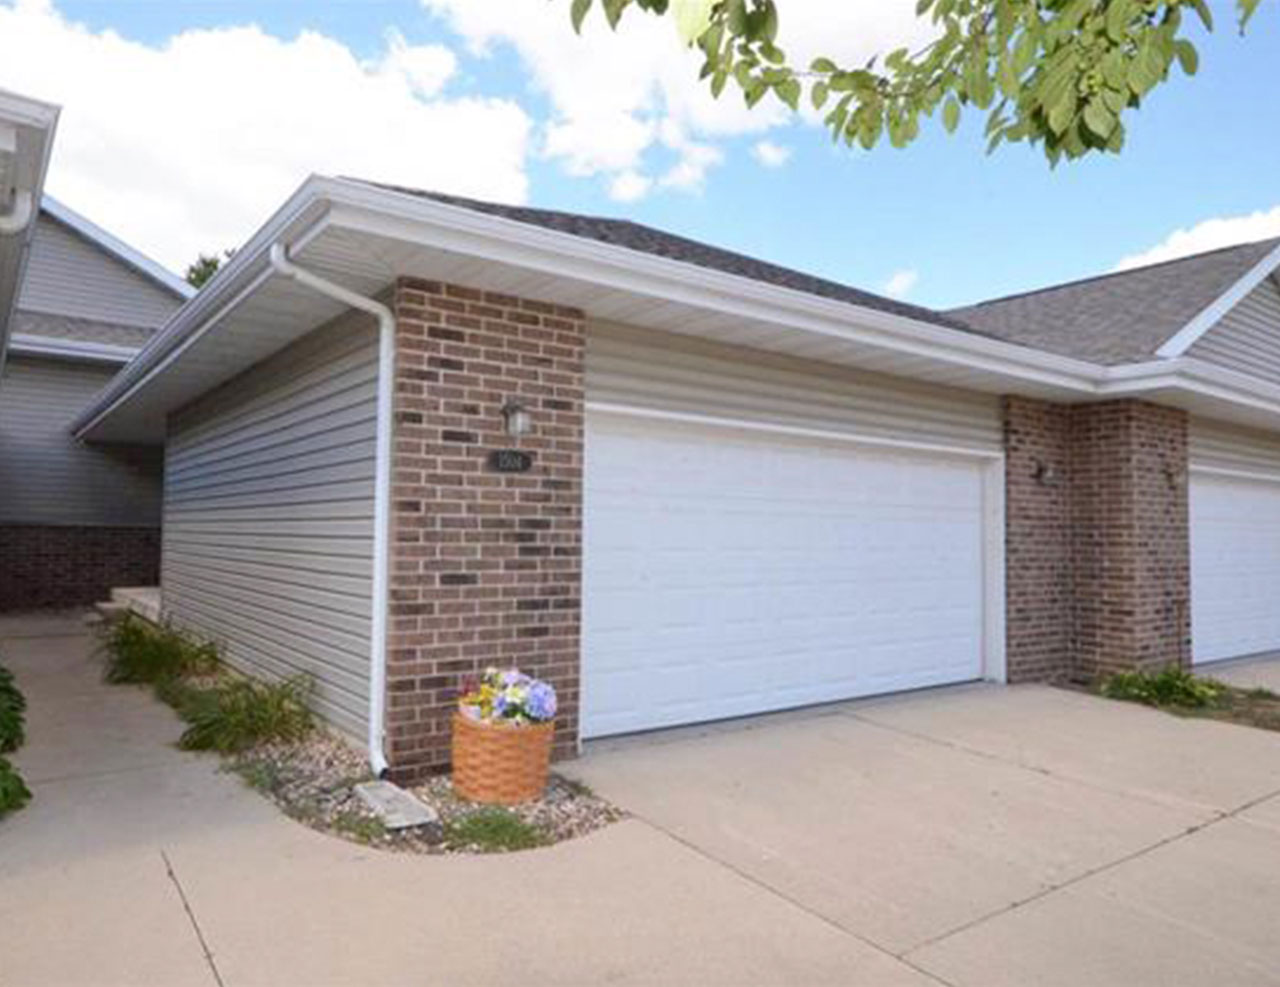 1504 Aspen Dr. Waterloo Home for Sale